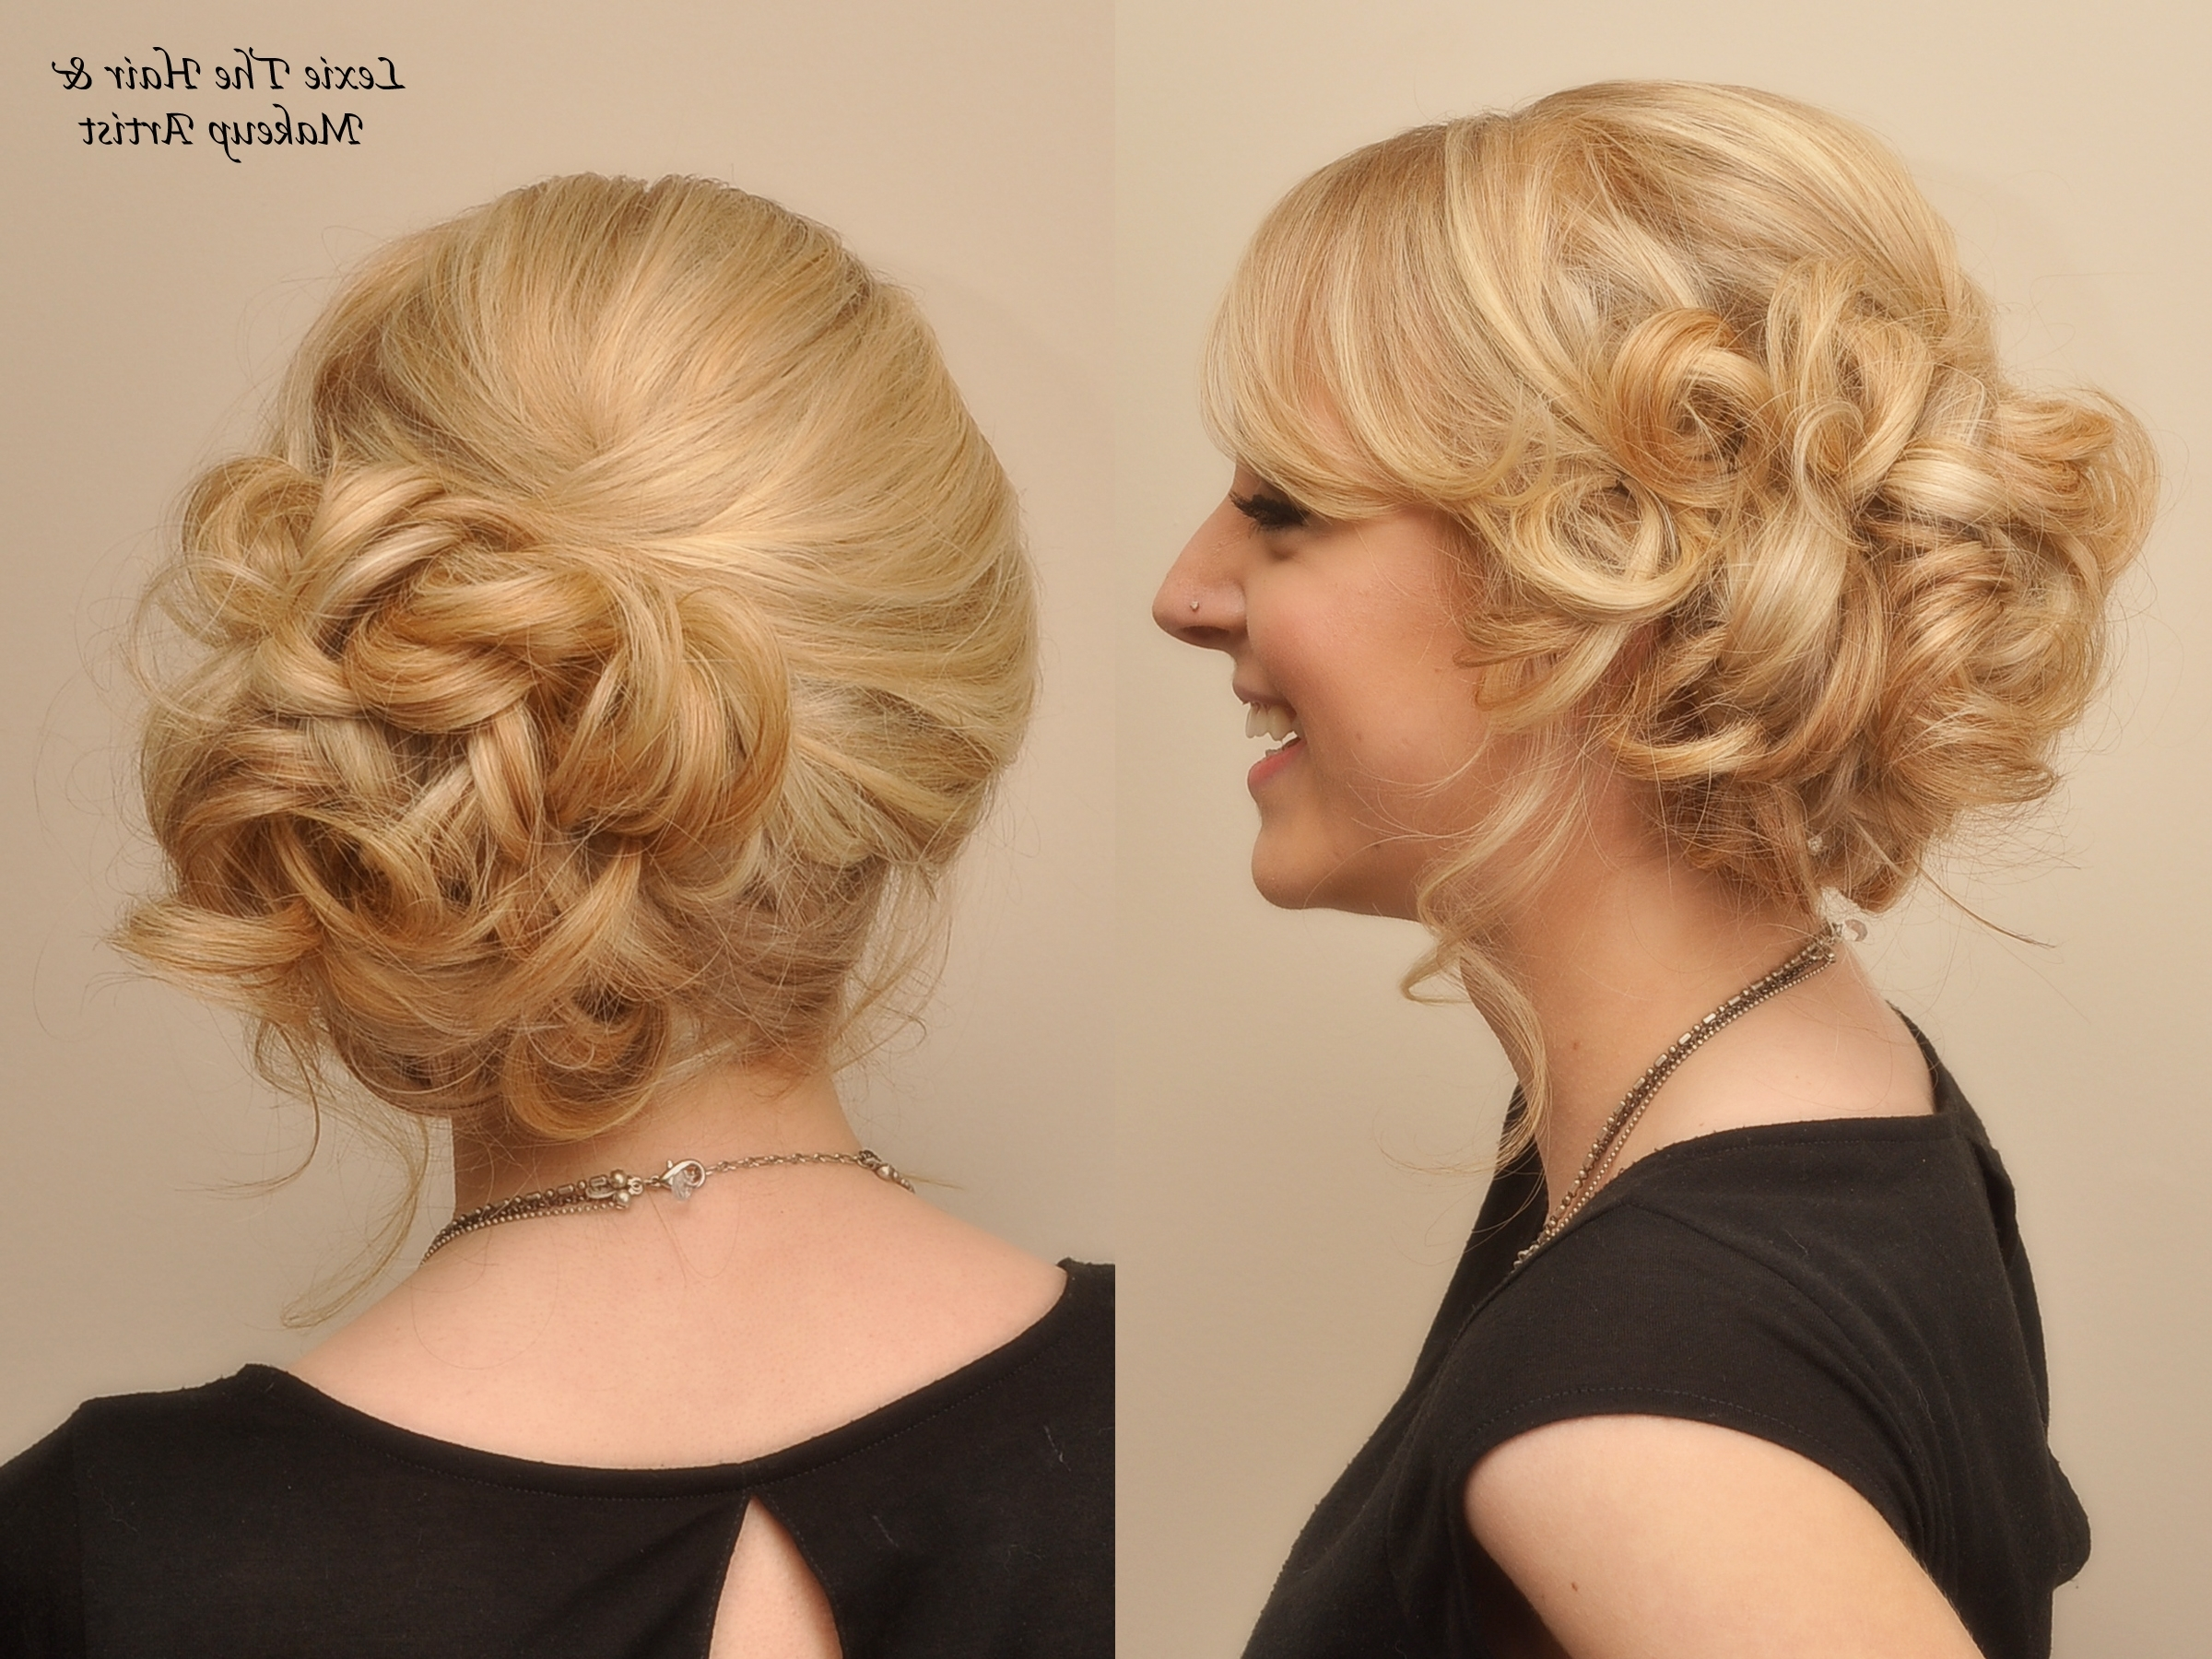 Most Recent Curly Side Bun Wedding Hairstyles Intended For Useful Curly Bun Hairstyles Wedding In Side Bun Updo Google Search (View 7 of 15)